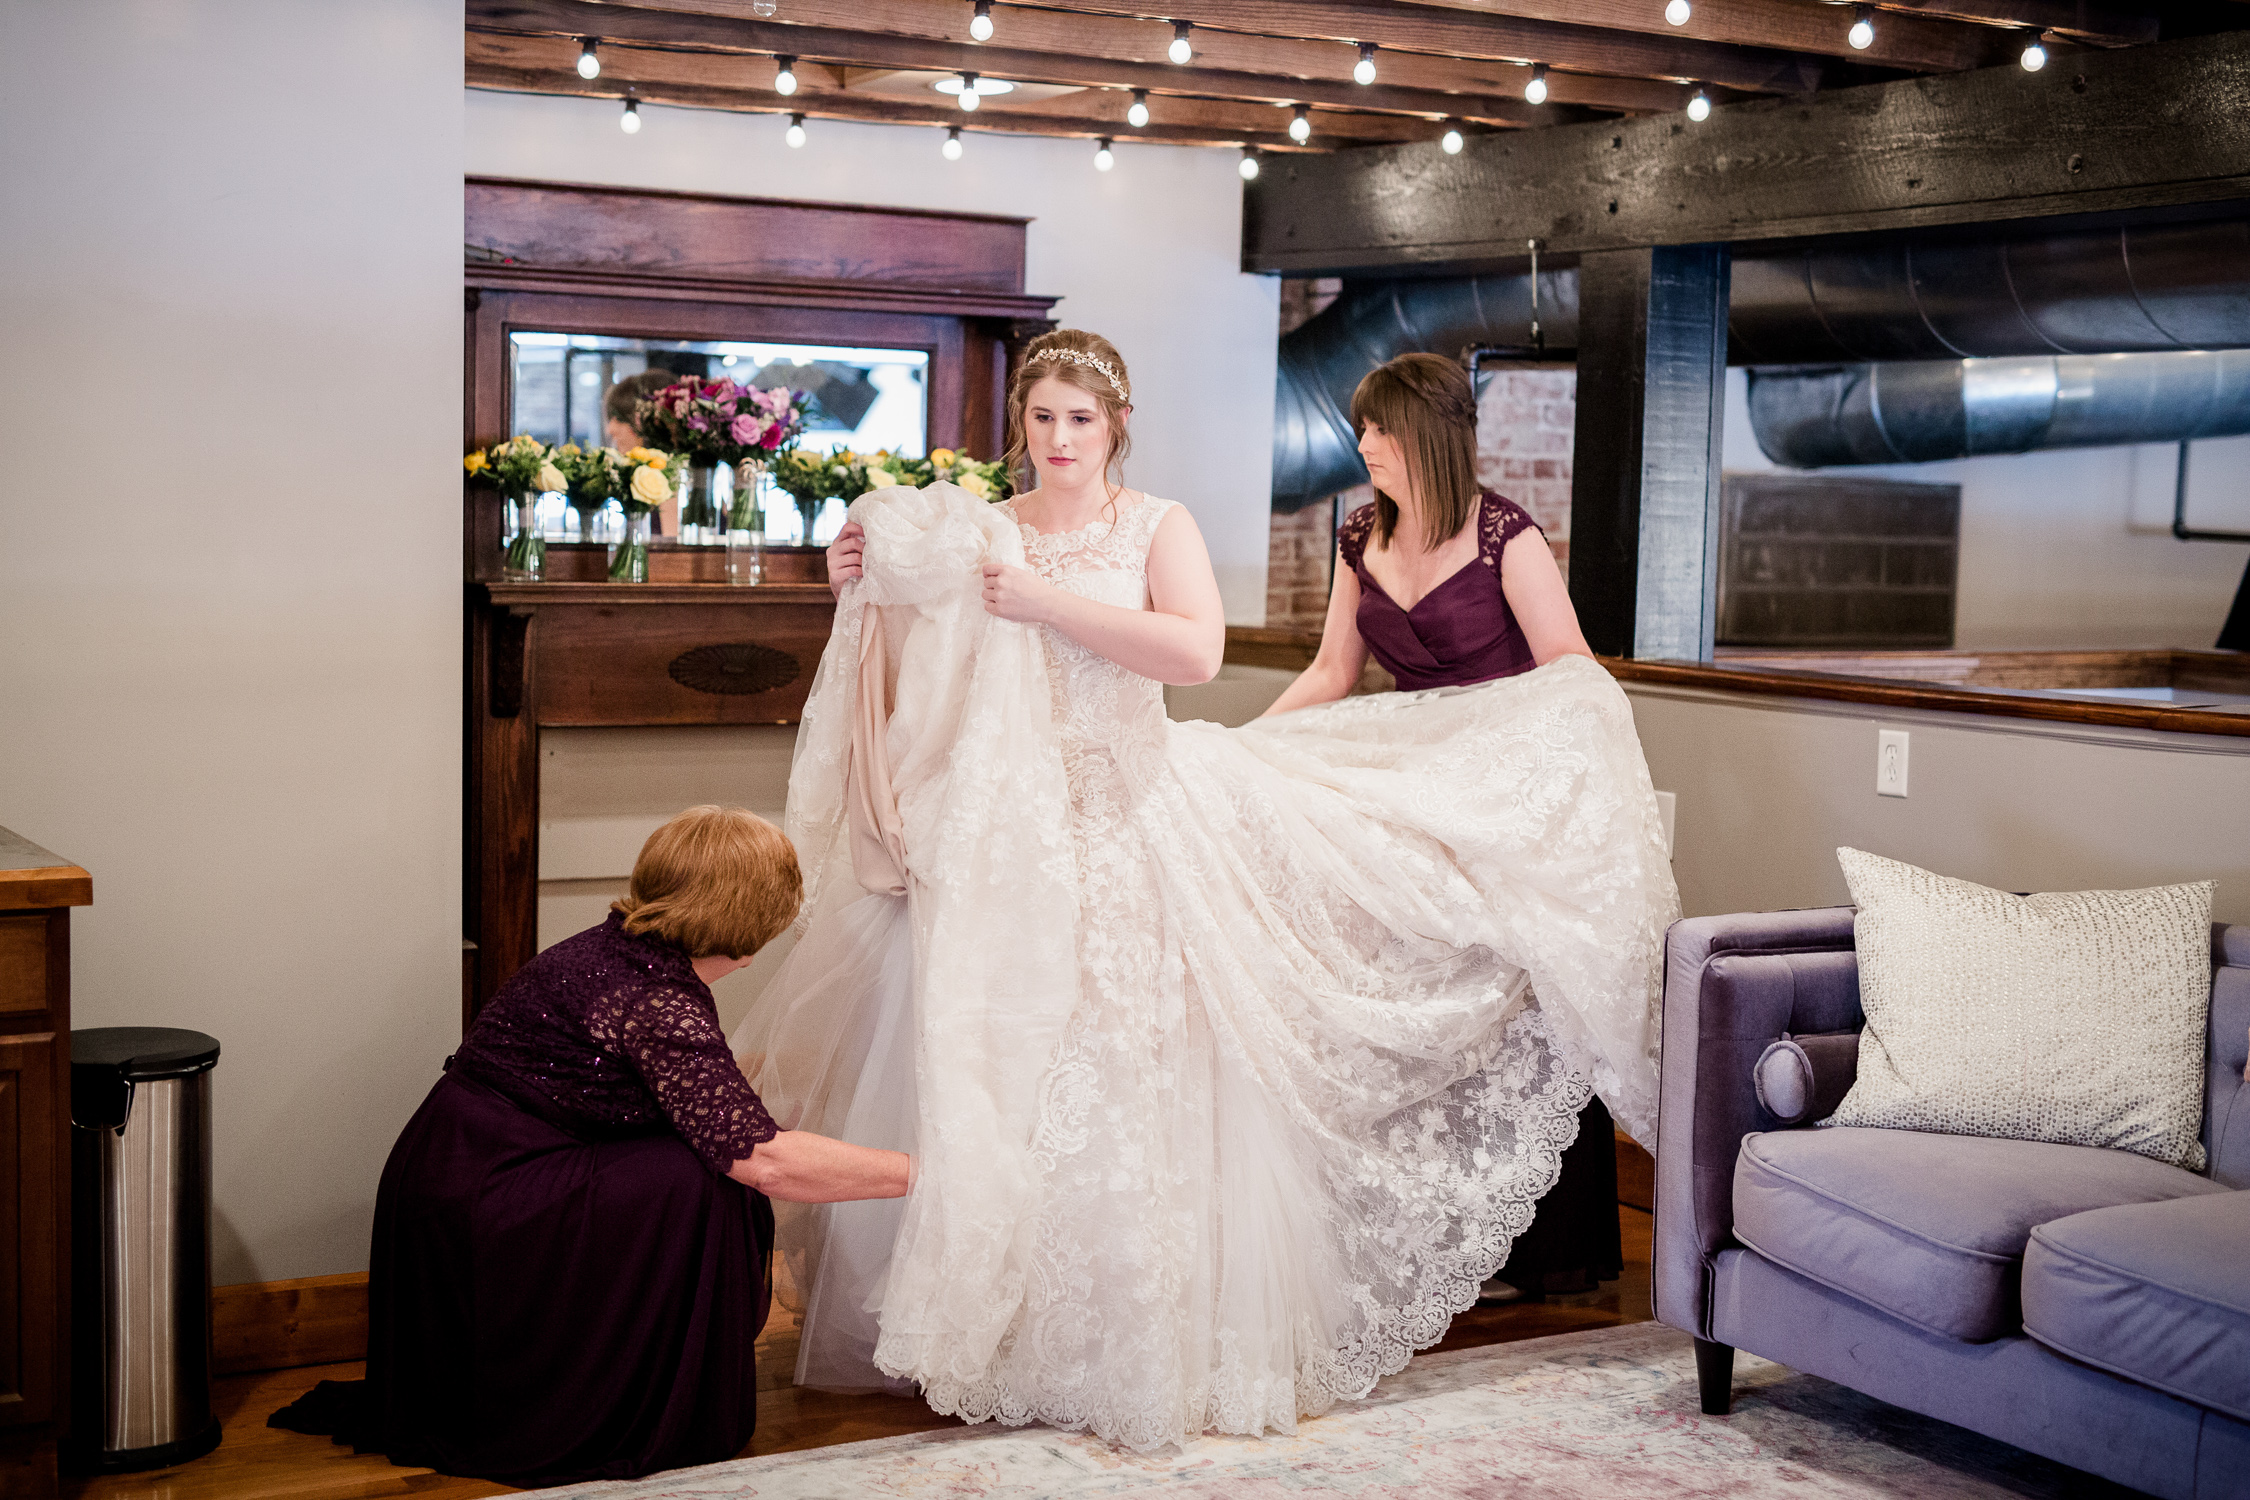 Downtown Knoxville Wedding Venue // Central Avenue Reception // Getting Ready